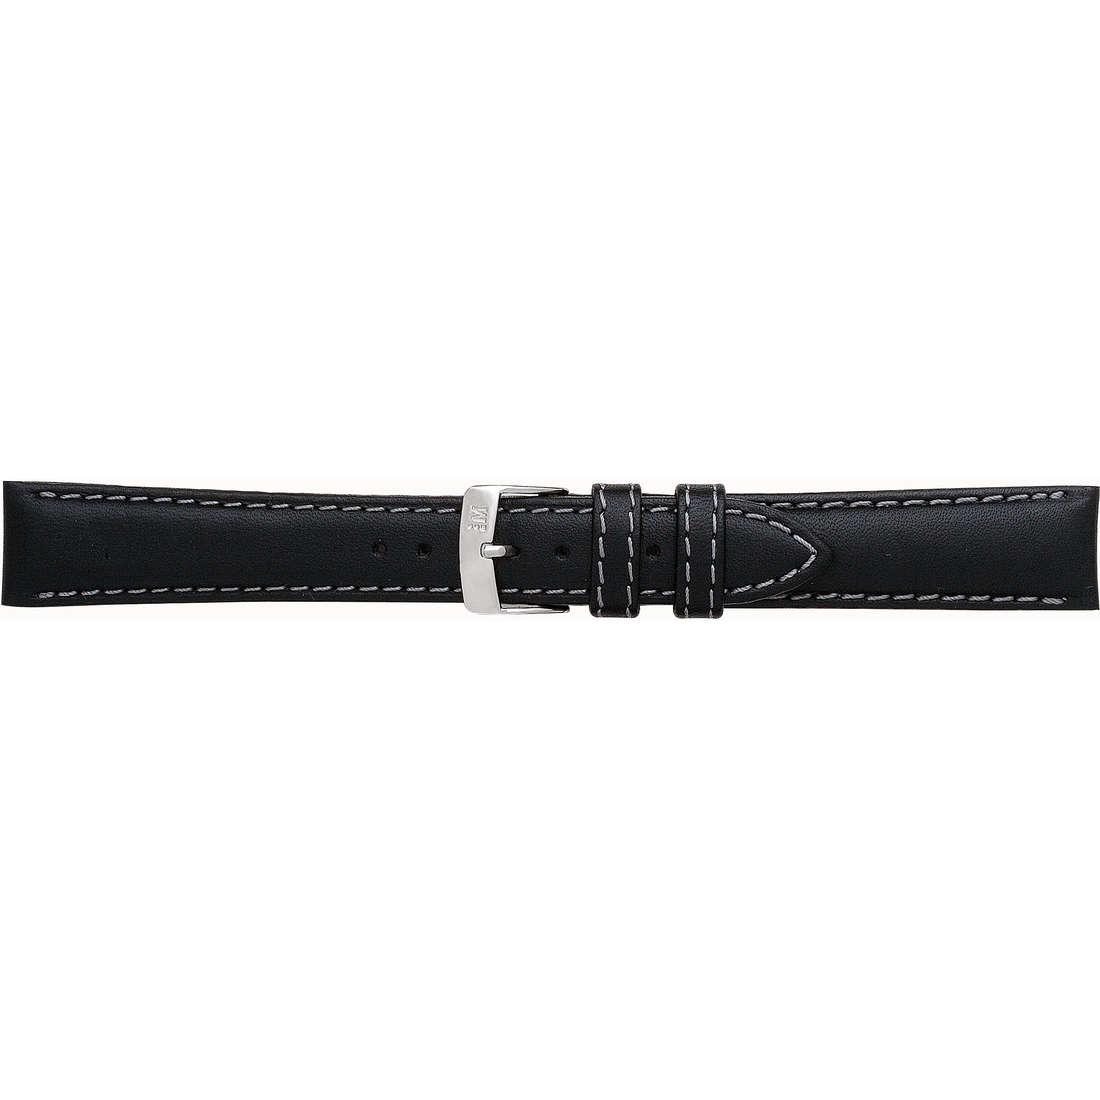 watch watch bands watch straps man Morellato Linea Sport A01X2785237019CR16